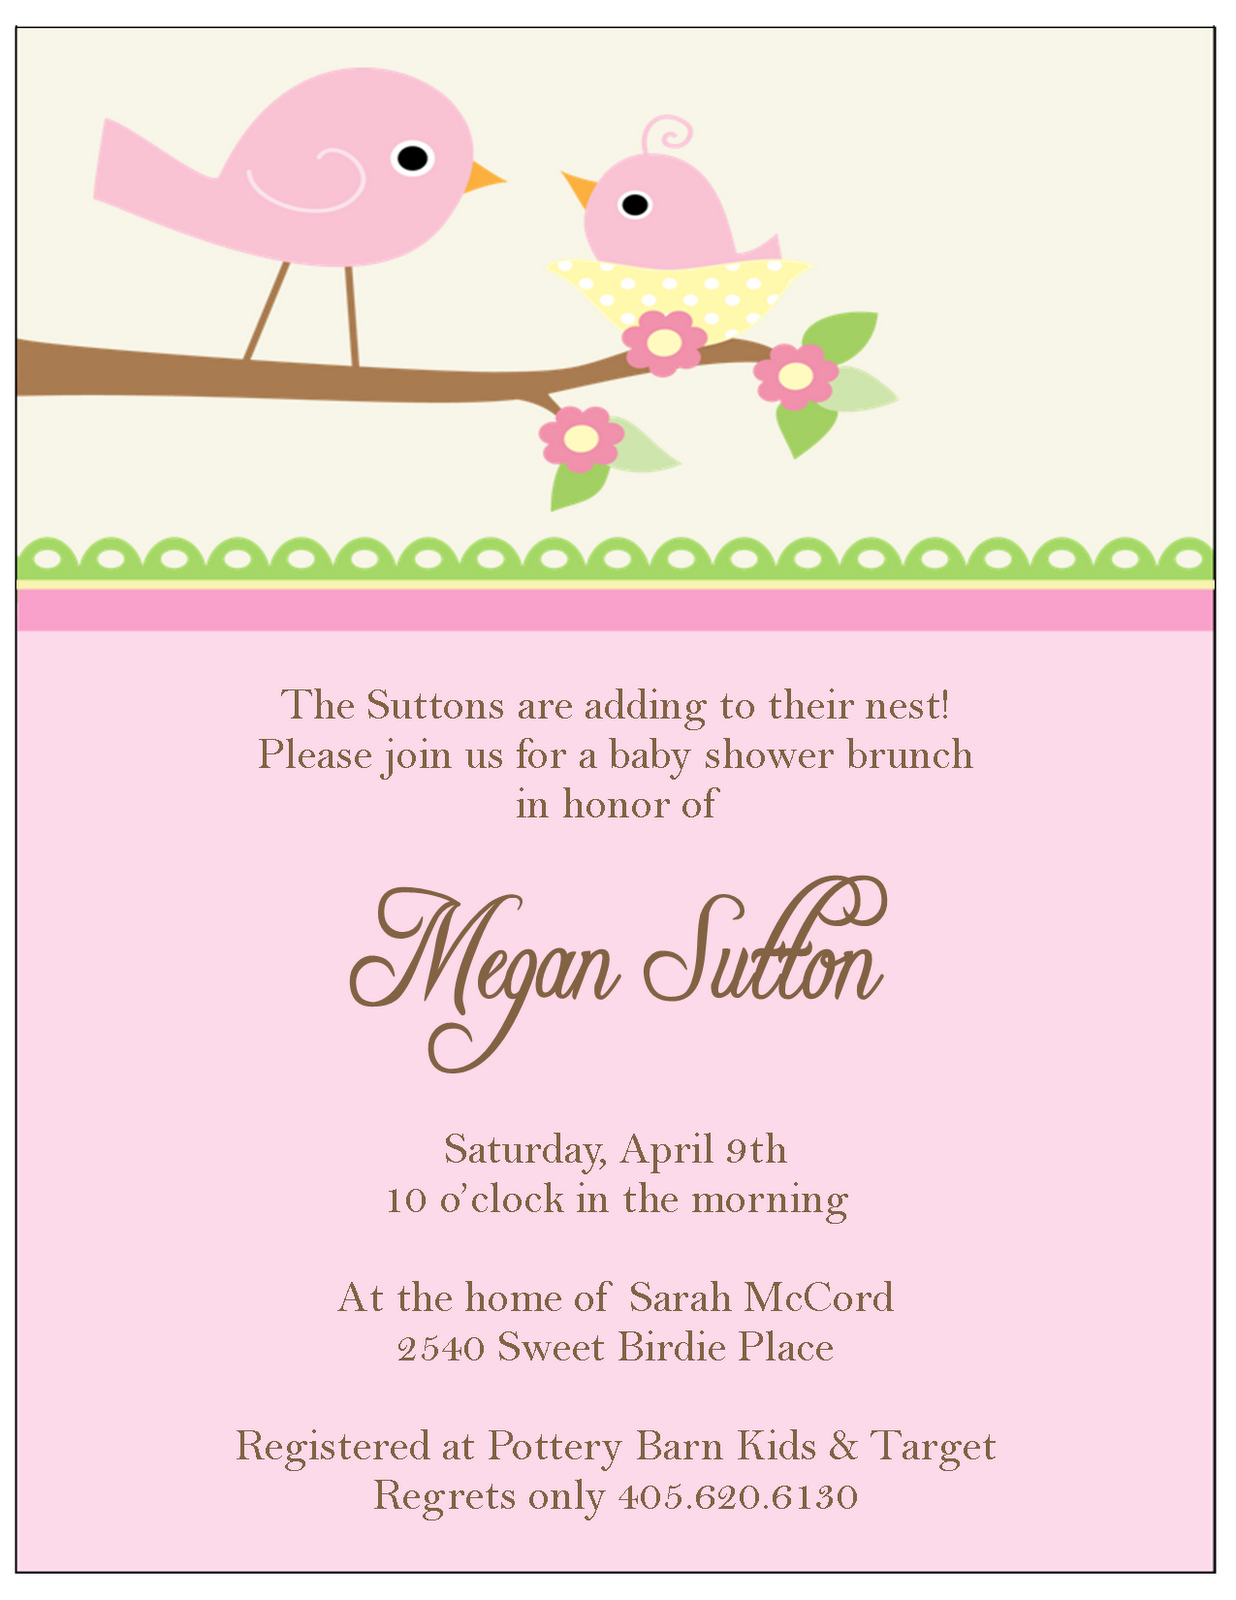 Baby Shower Invitations - The Sweet Peach Paperie Little Birdie